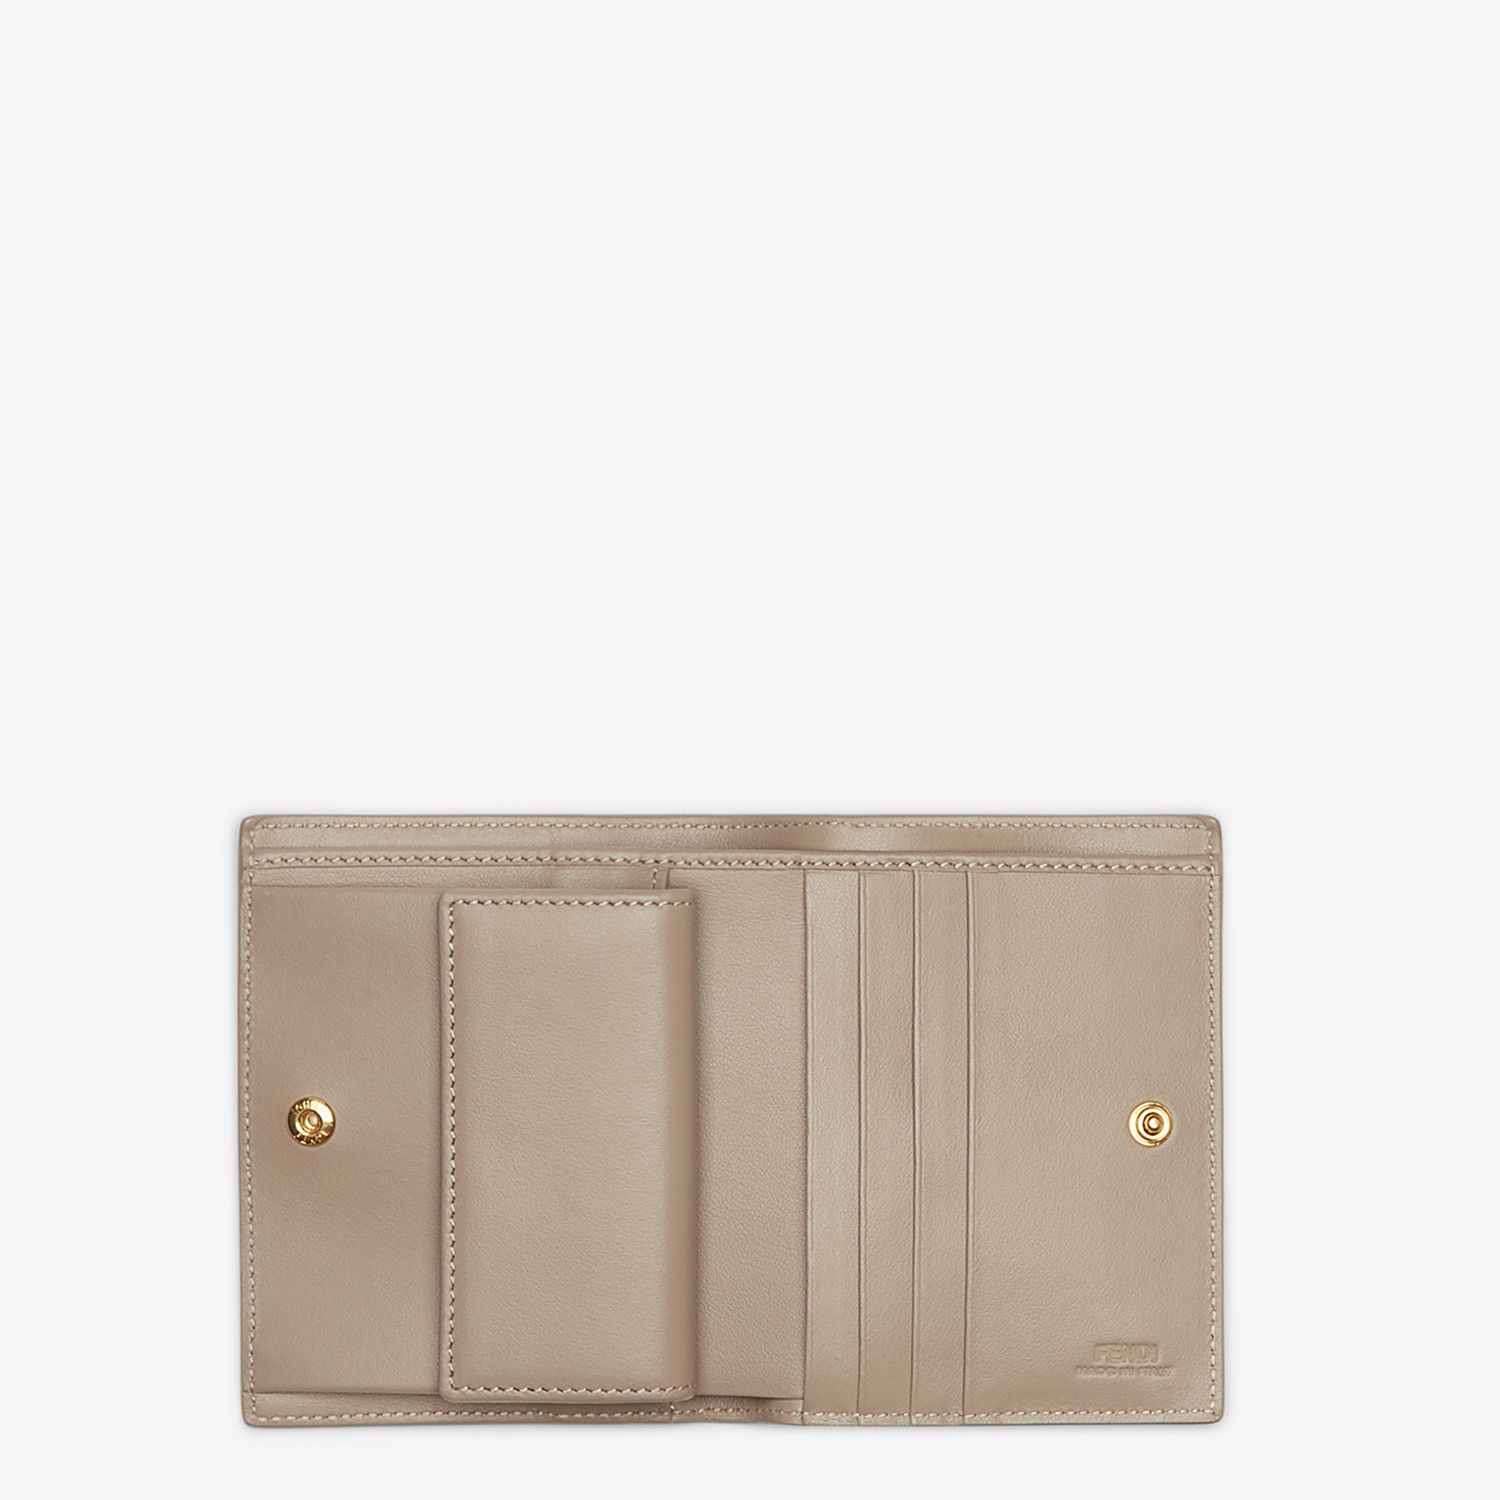 FENDI BIFOLD - Beige compact leather wallet - view 4 detail